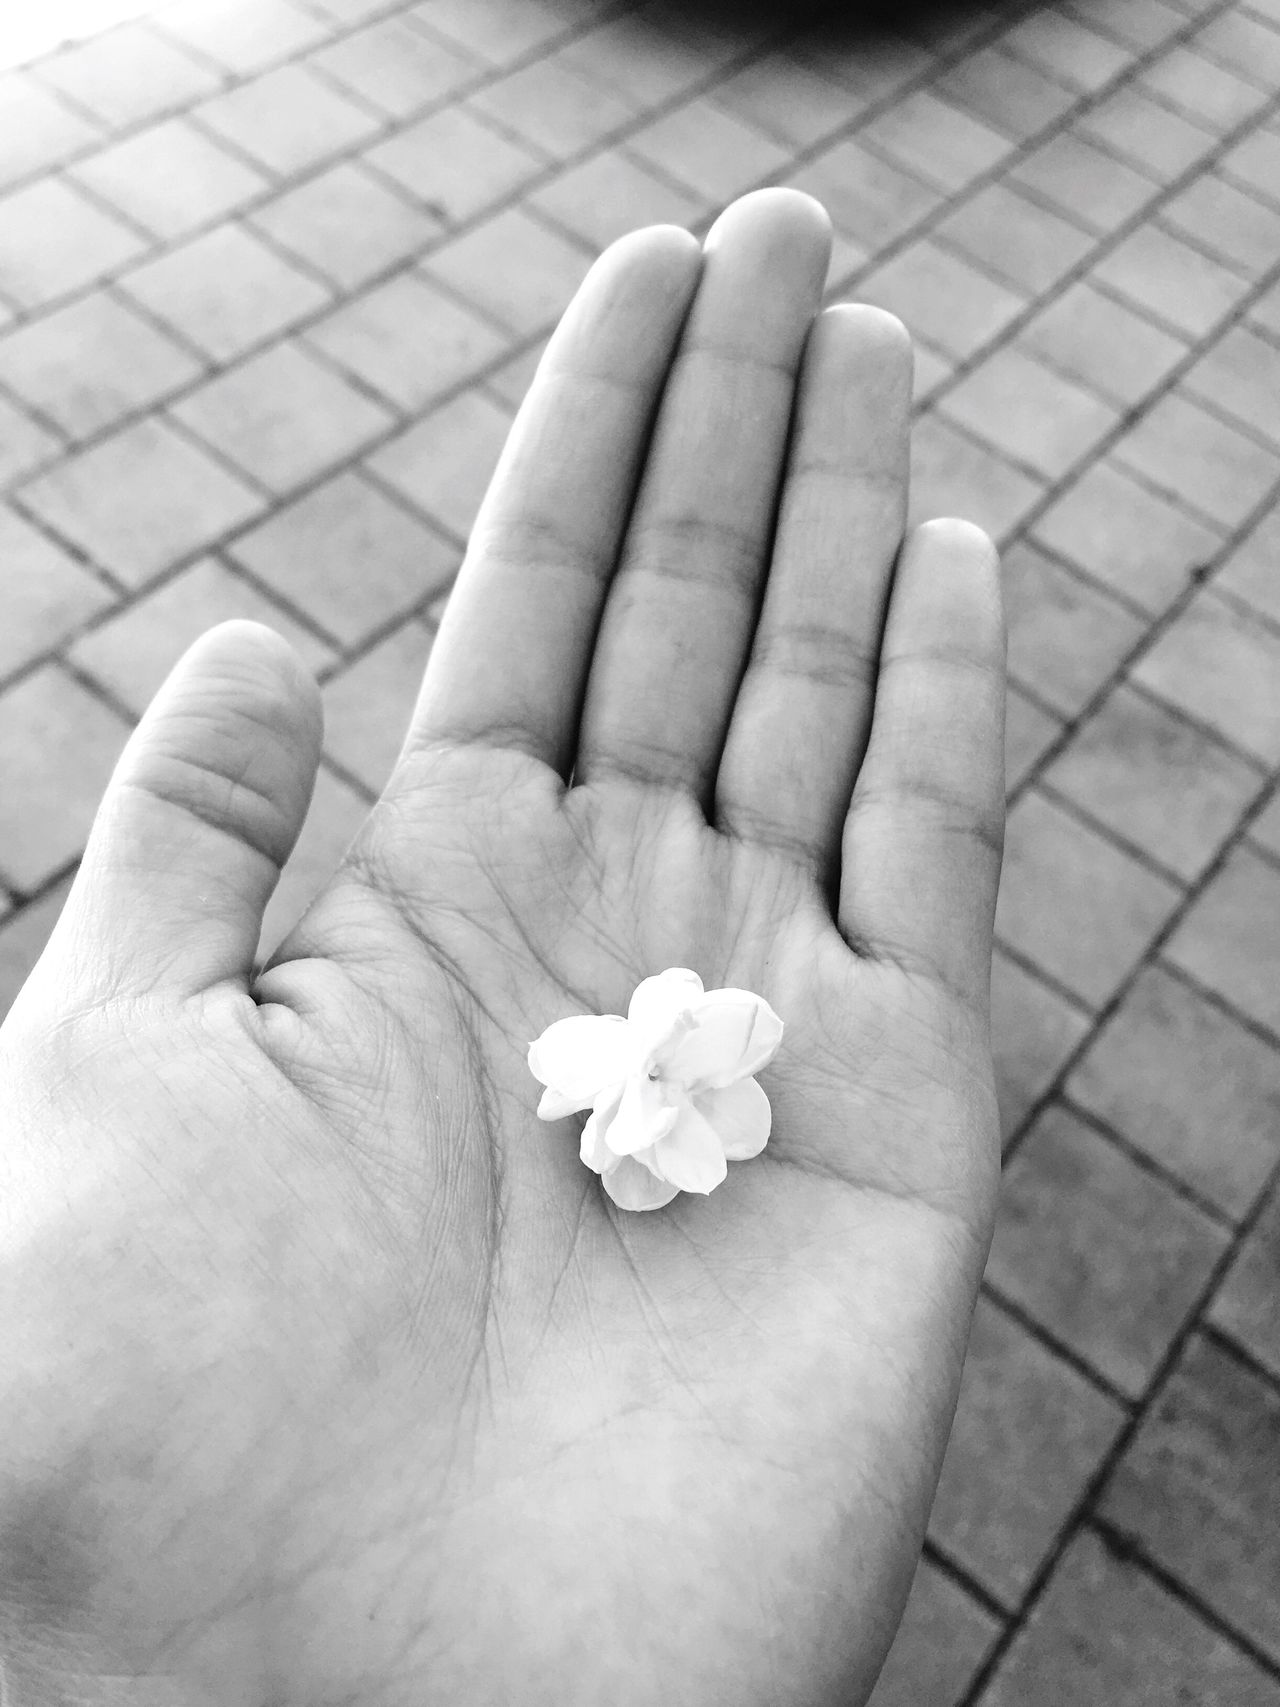 Jasmine in my hand. (null)Human Hand Human Body Part Outdoors Fragility Palm Flowers, Nature And Beauty Flower Collection Flower White Flower Jasmine Flower Jasmine Collection Jasmine Flower Photography Pure Blackandwhite